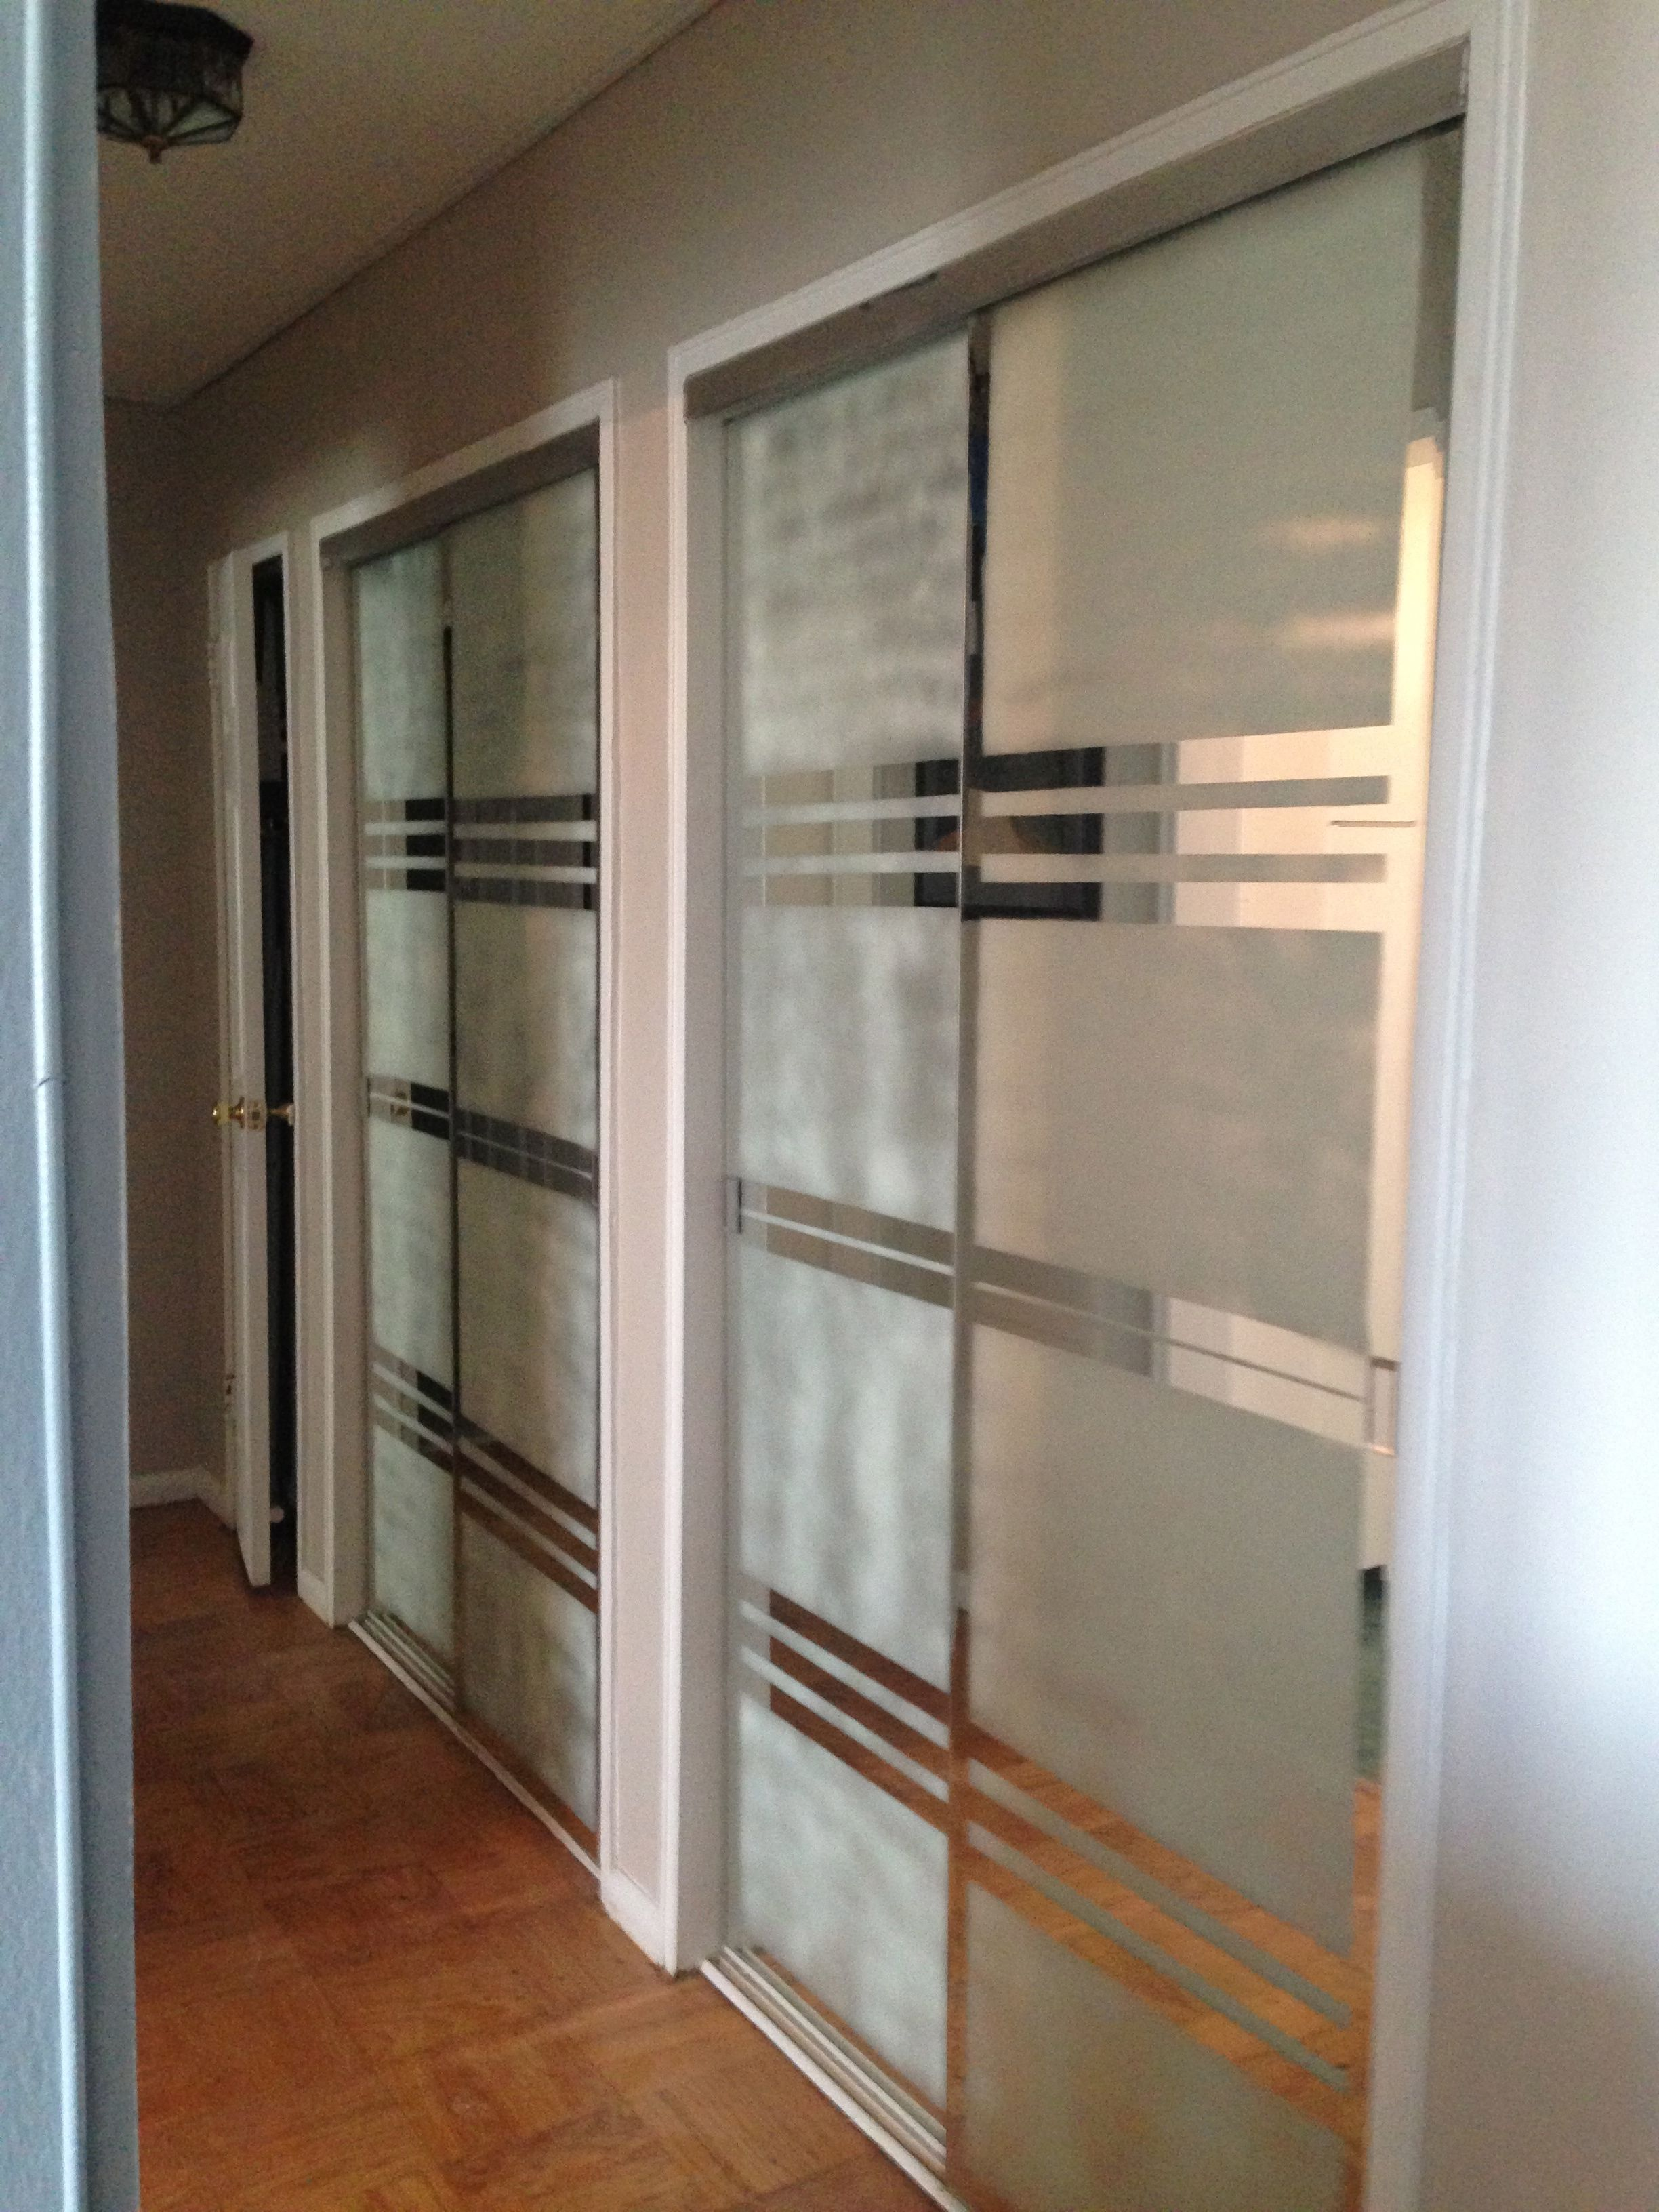 used blue tape and frosted spray to create more modern design on mirror closet doors in